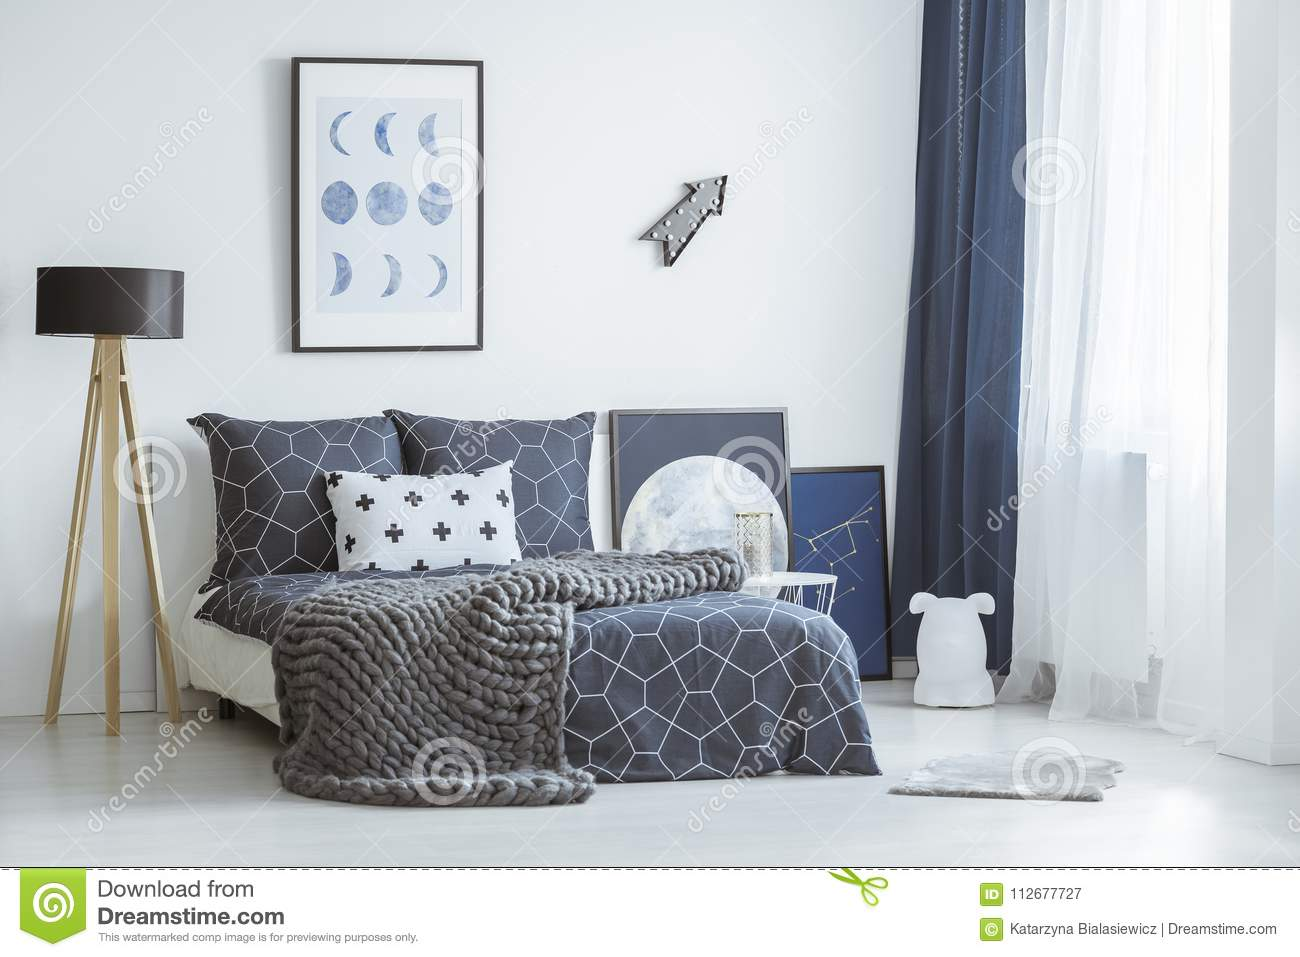 Poster In Patterned Bedroom Interior Stock Image - Image of phases ...